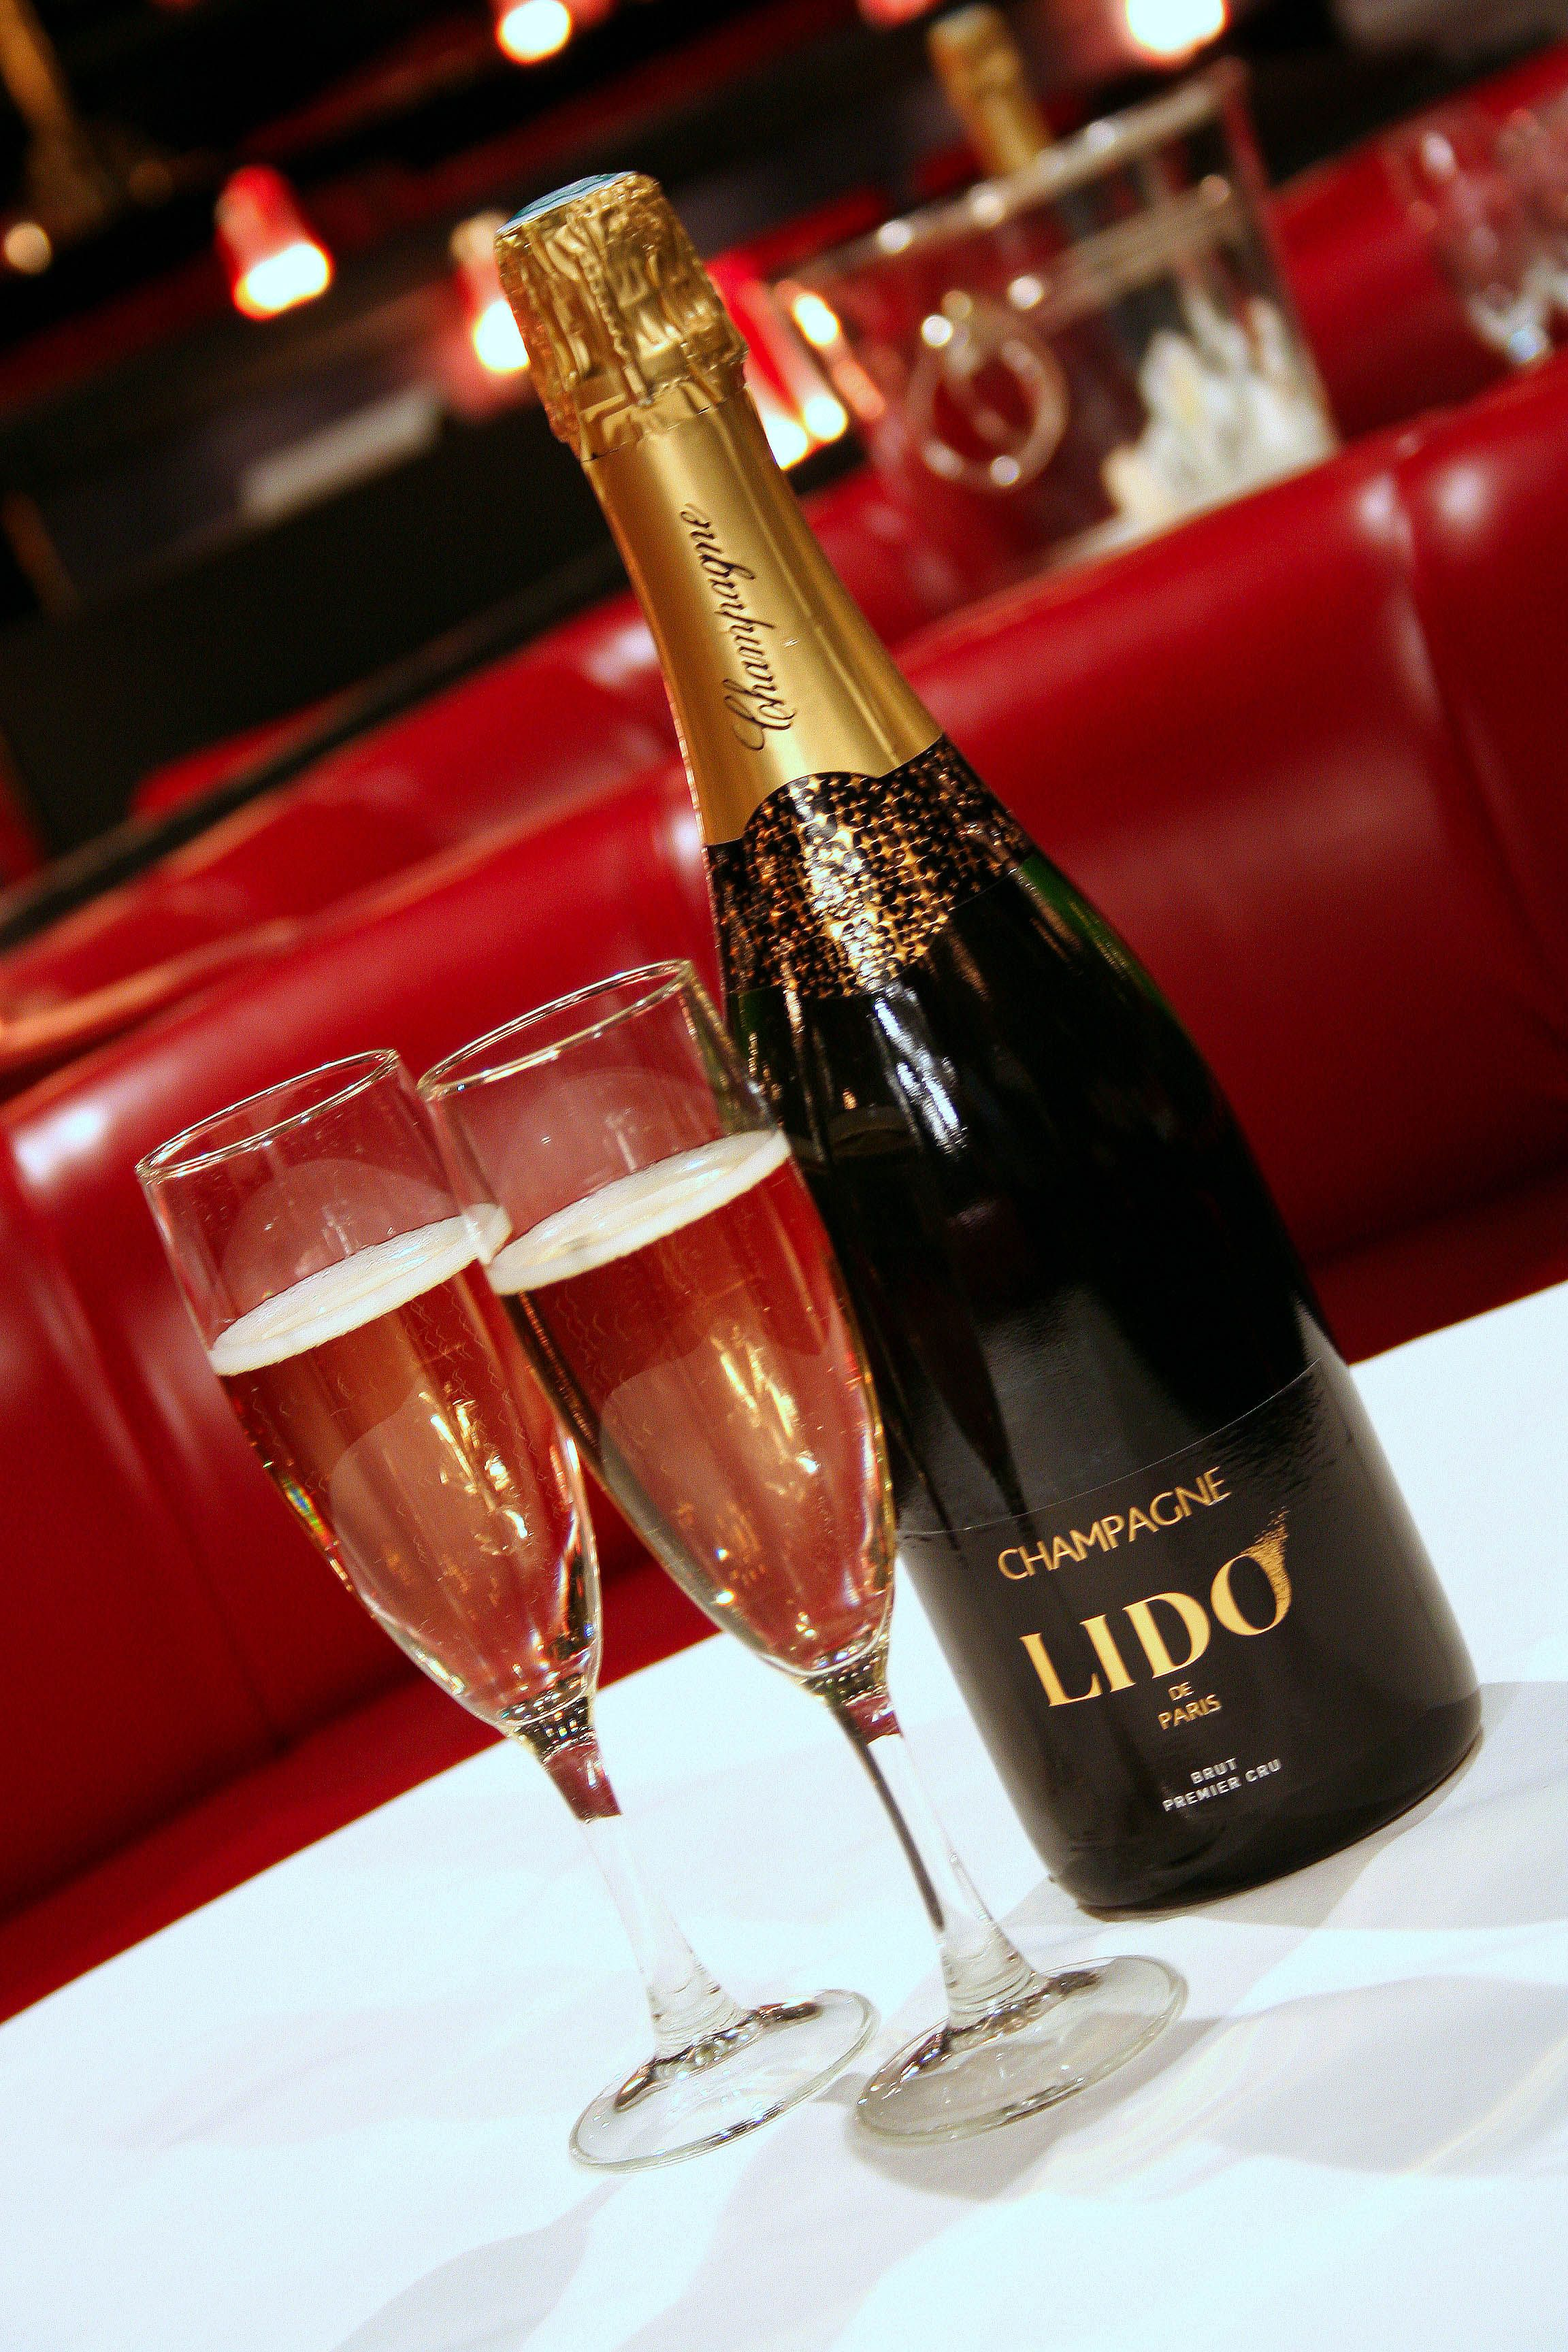 Cheers To A Champagne Dinner At World Famous Lido Cabaret For The Grand Taste Of Paris Contest Make It Yours While You Still C Champagne Cabaret Lido De Paris